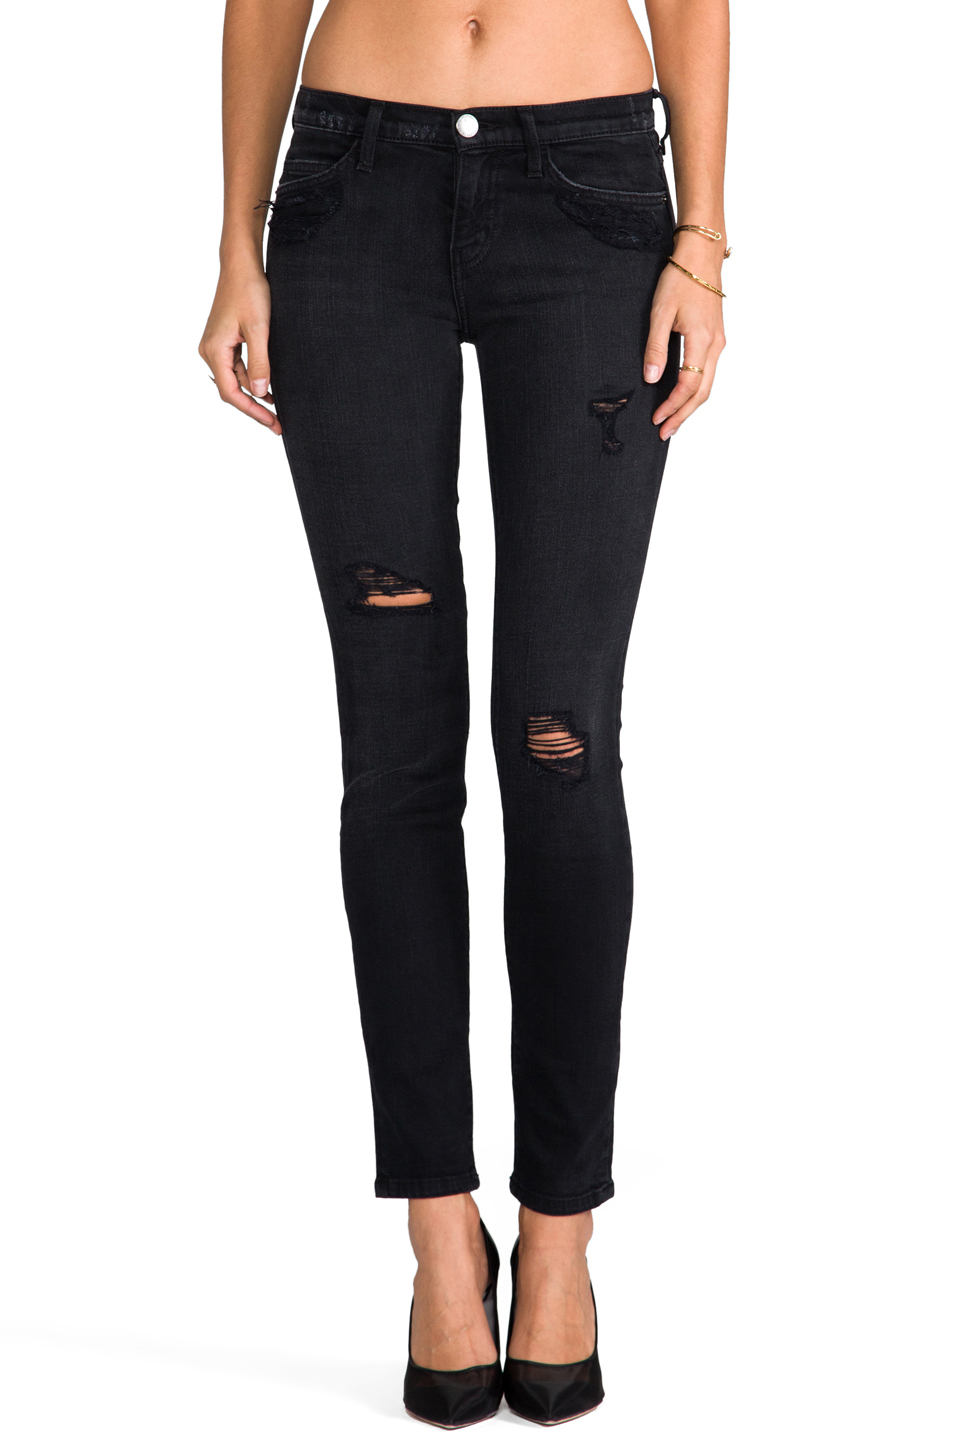 Current/Elliott The Ankle Skinny in Black Destroy | REVOLVE